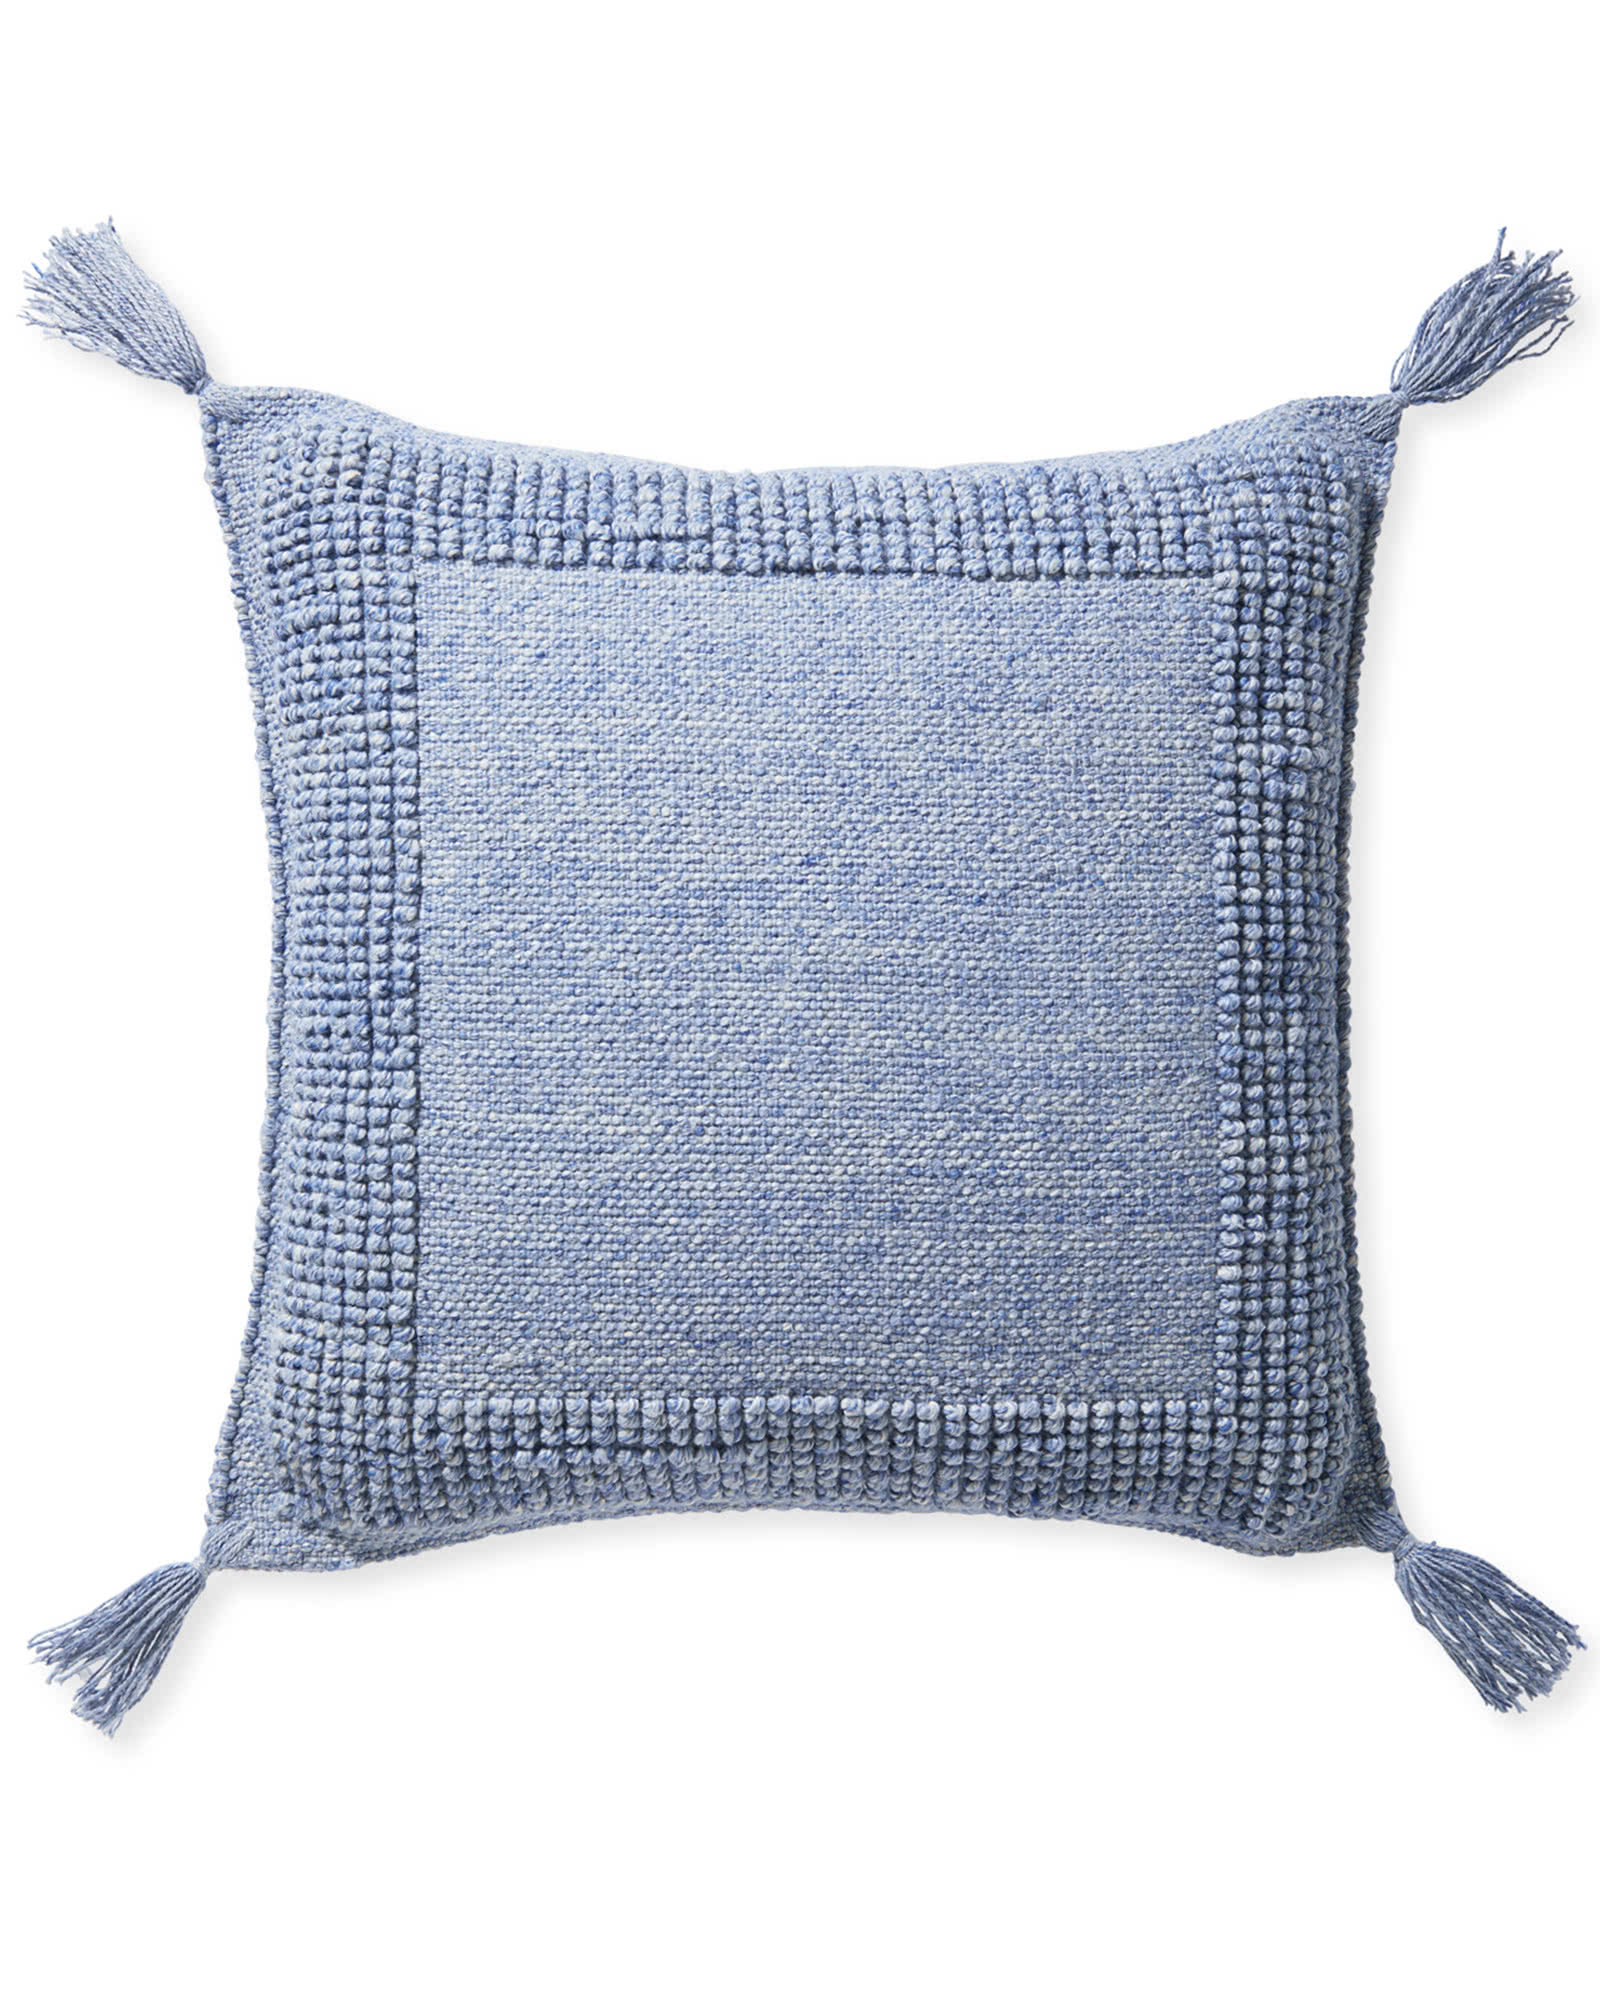 Montecito Floor Pillow, Coastal Blue